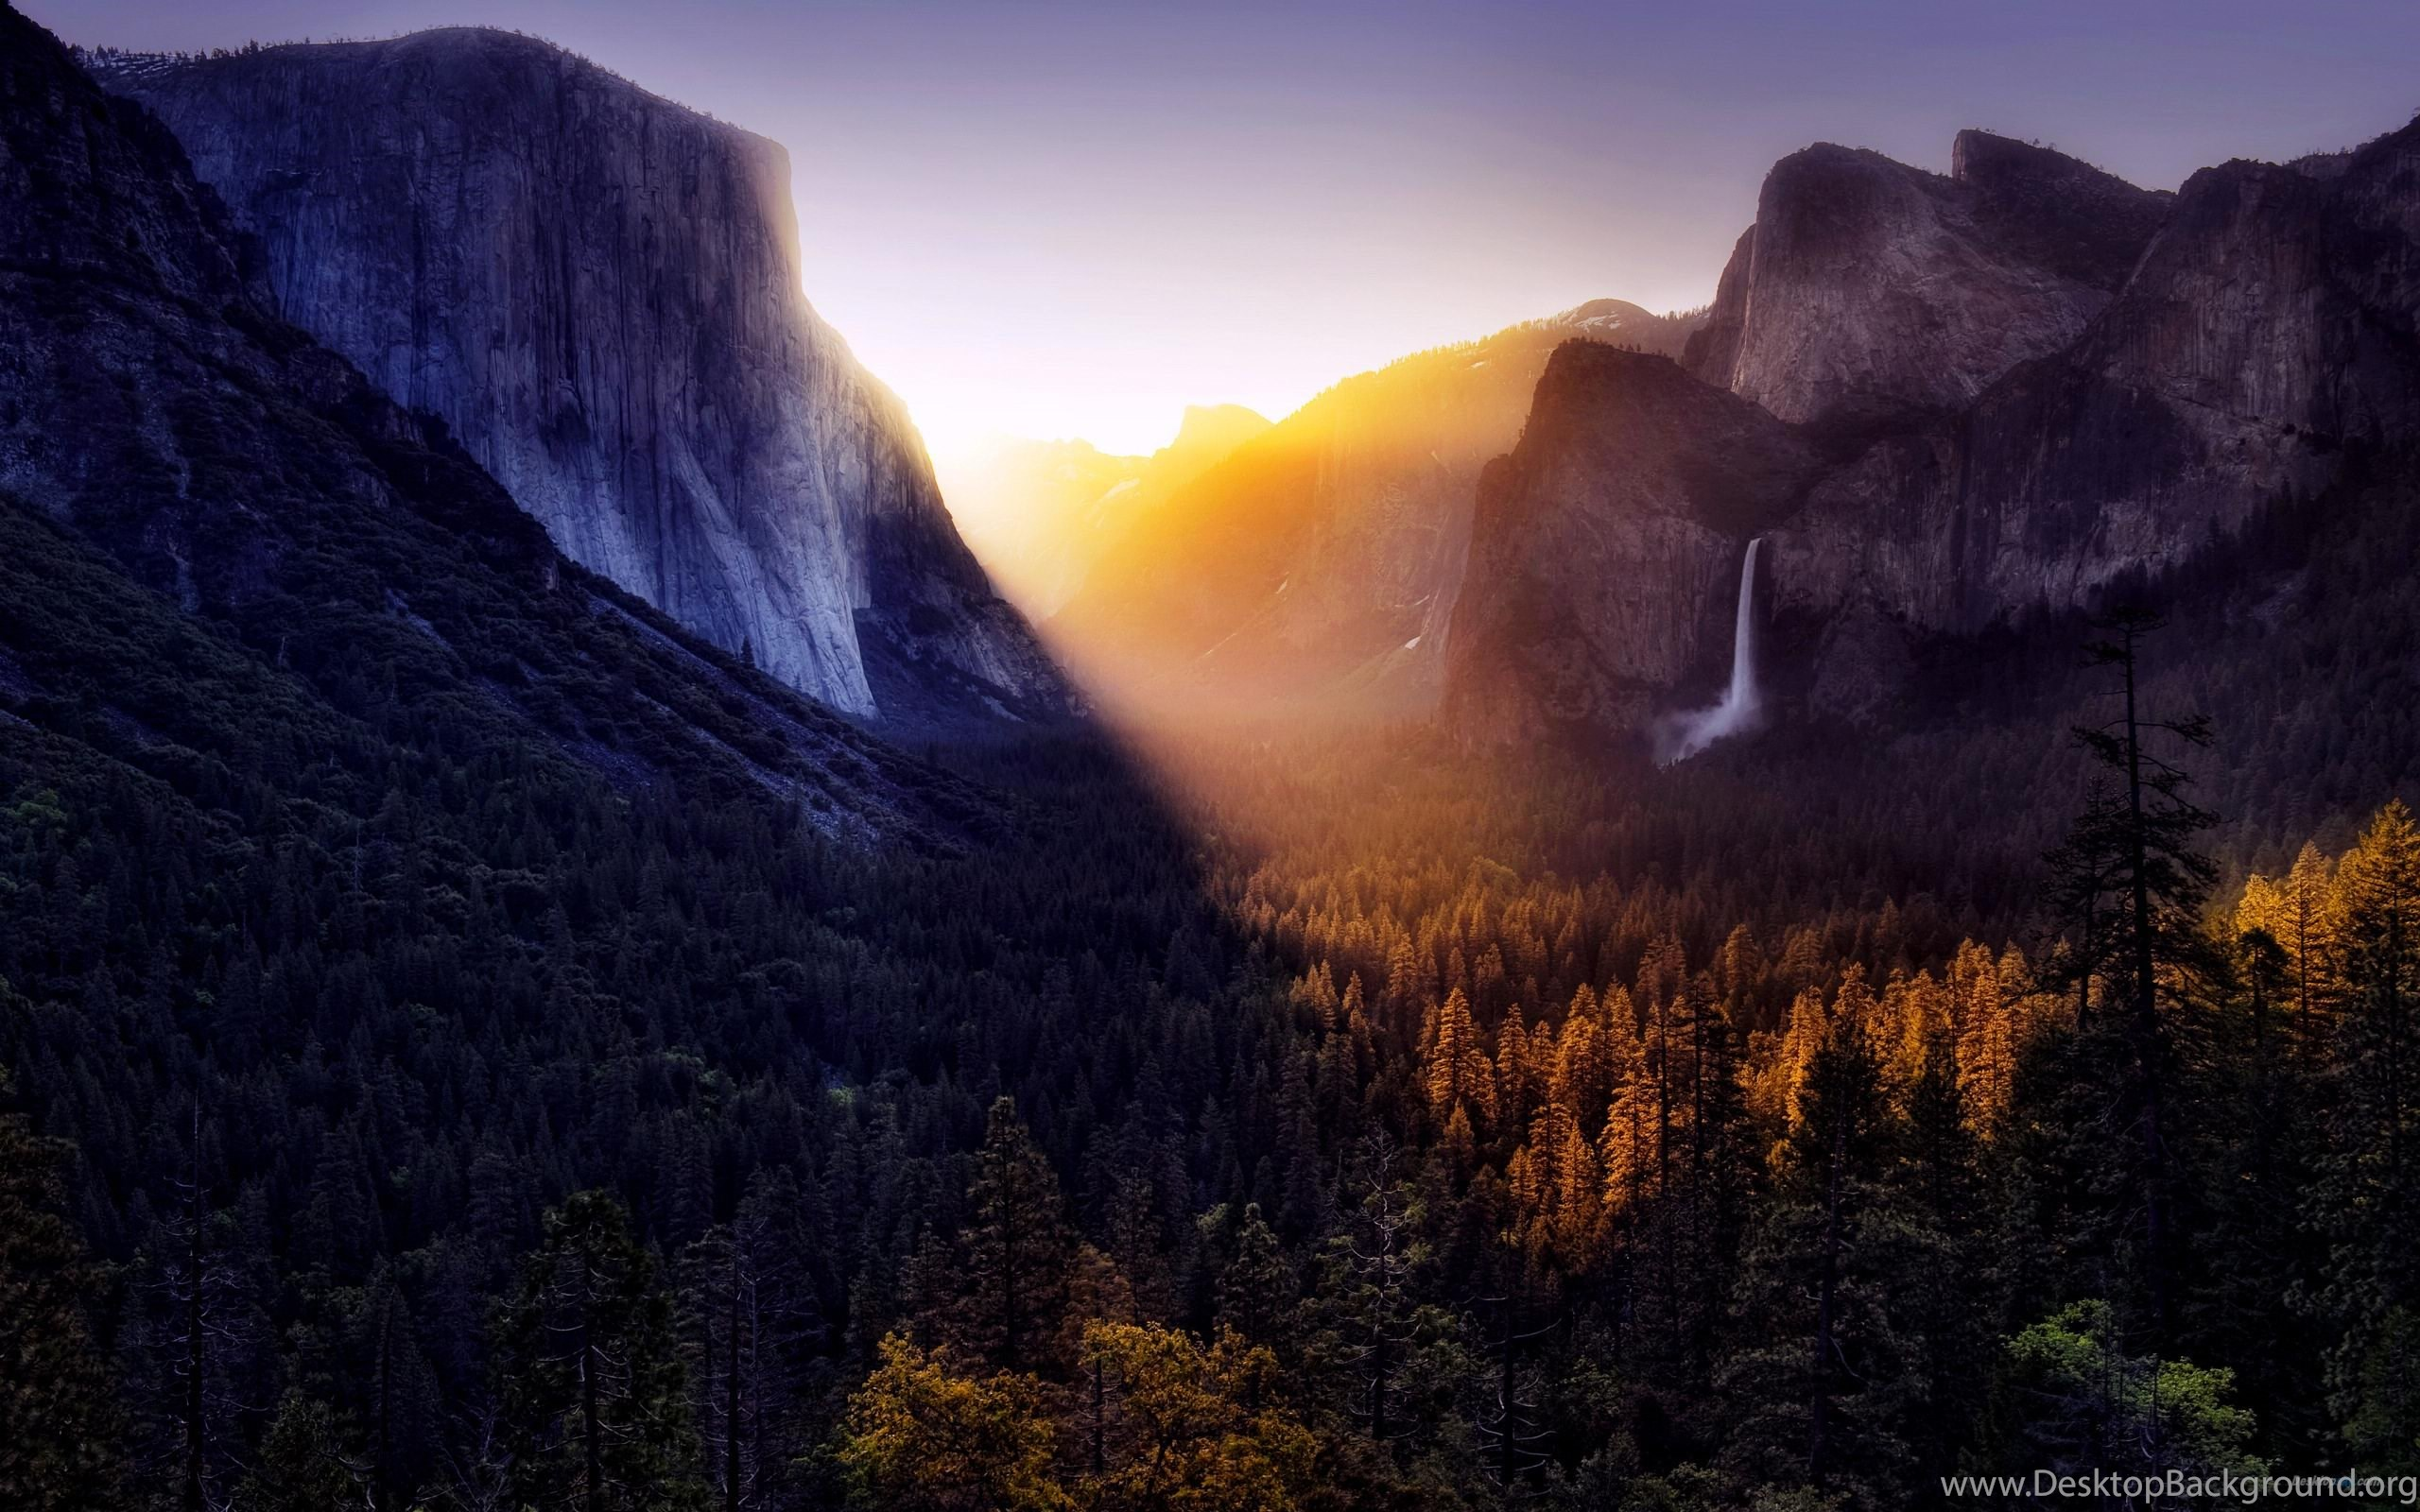 Unduh 44 Koleksi Wallpaper Iphone Yosemite Gratis Terbaru